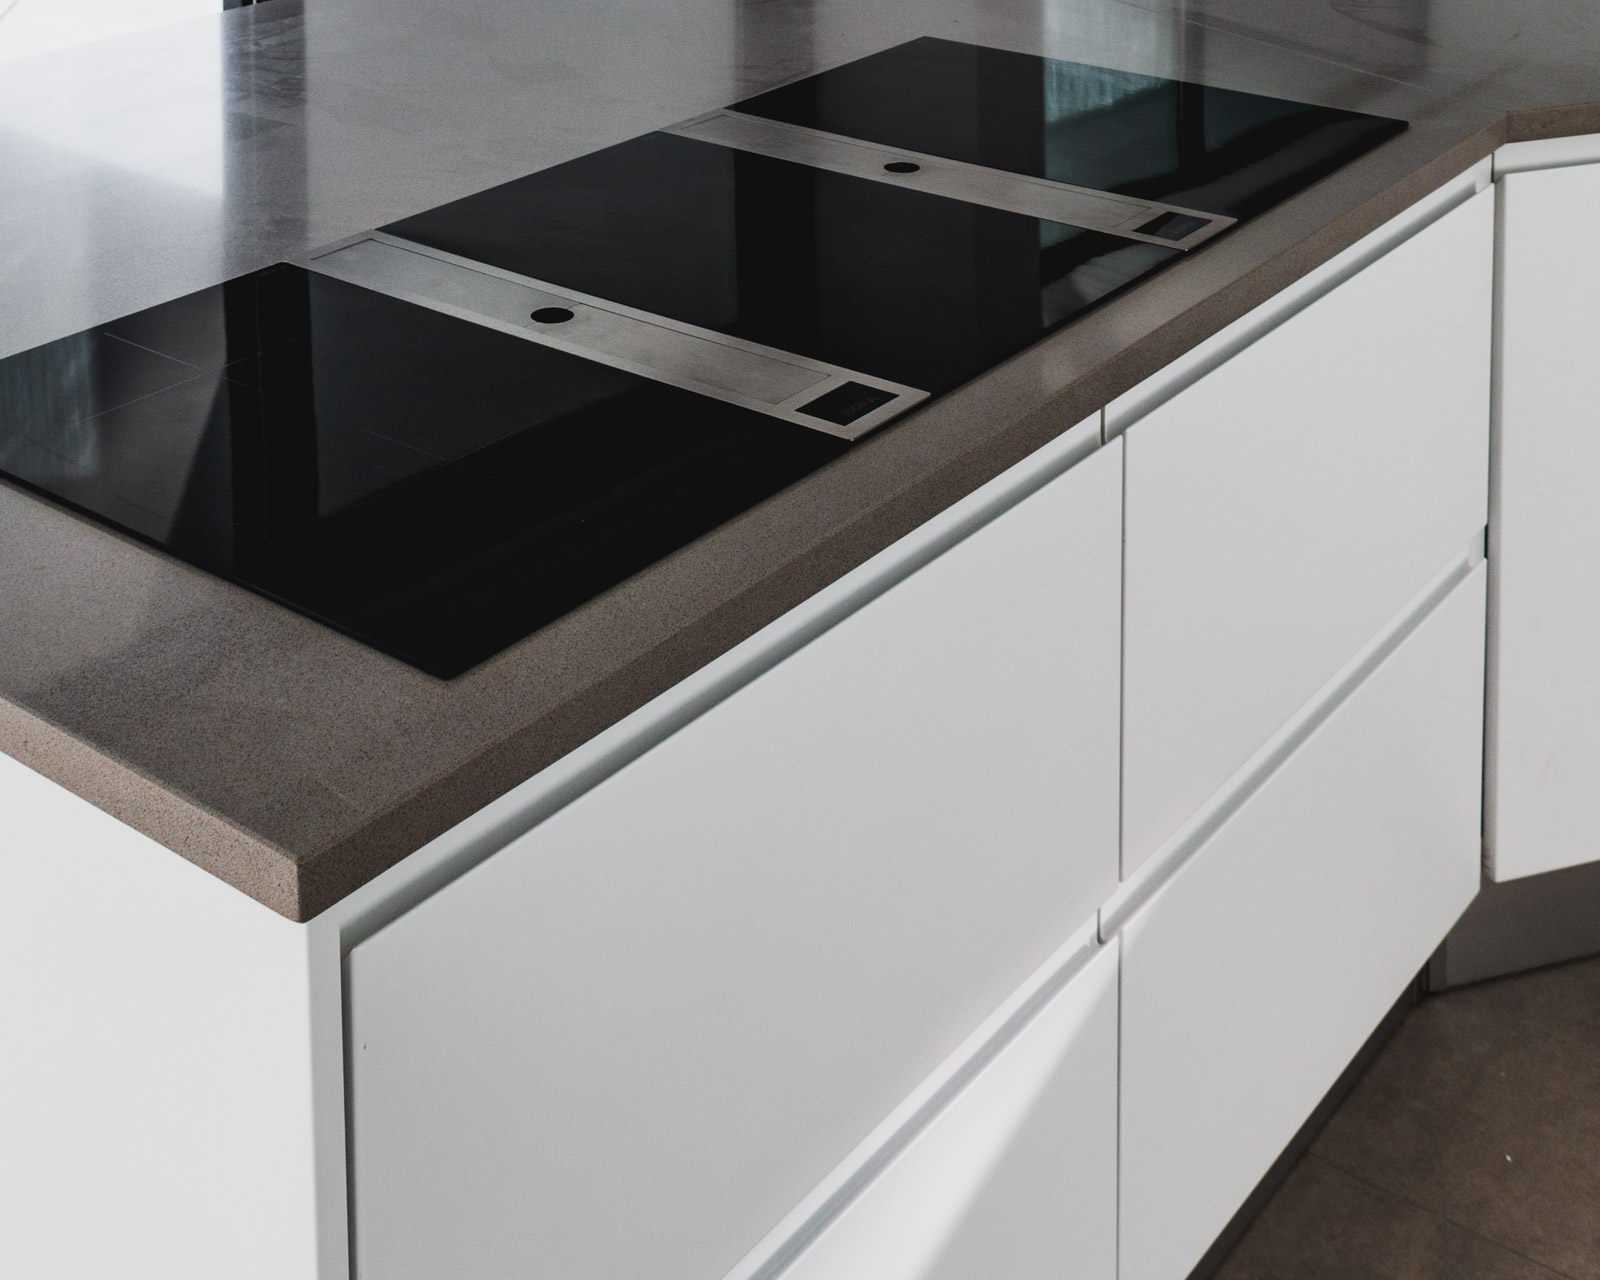 Handleless kitchen island, with white matte lacquered fronts and the induction+extraction system BORA Classic